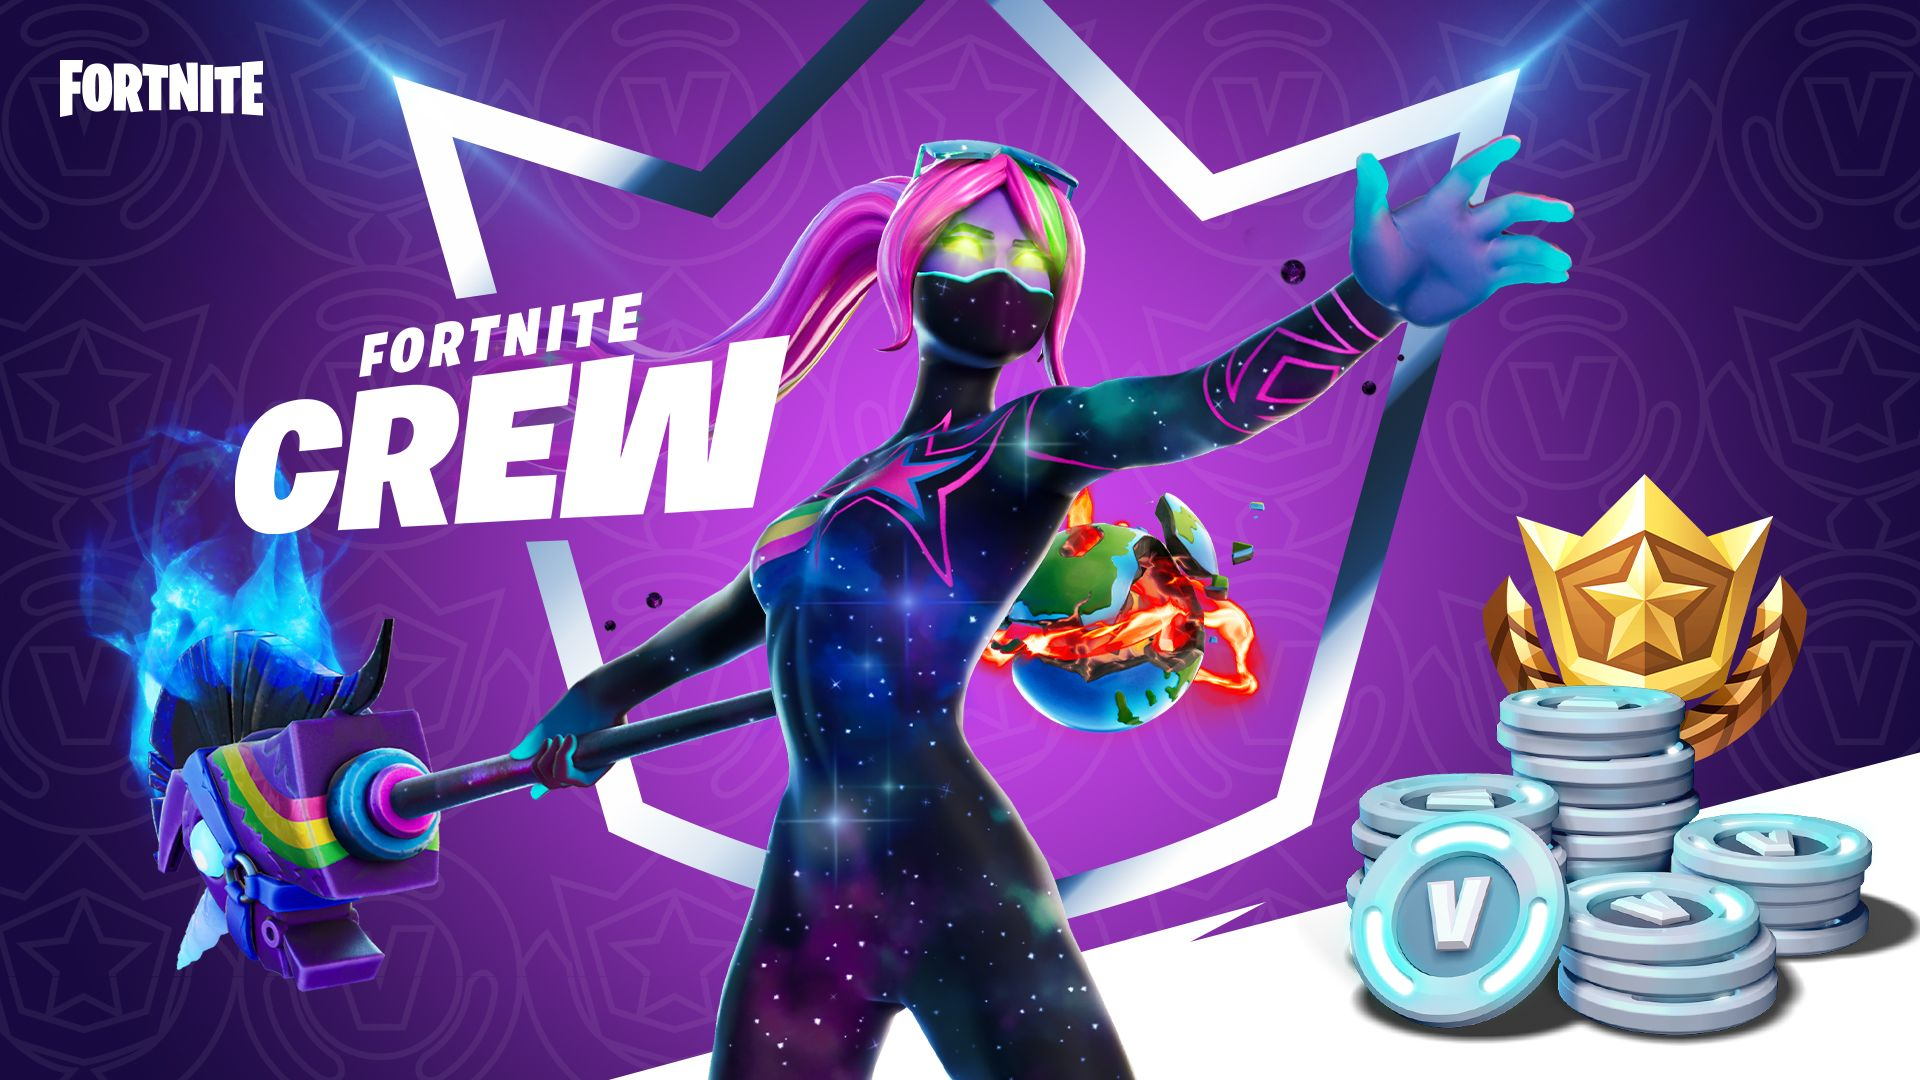 Fortnite Crew Is a Monthly Subscription That Comes With a Battle Pass and Exclusive Outfit